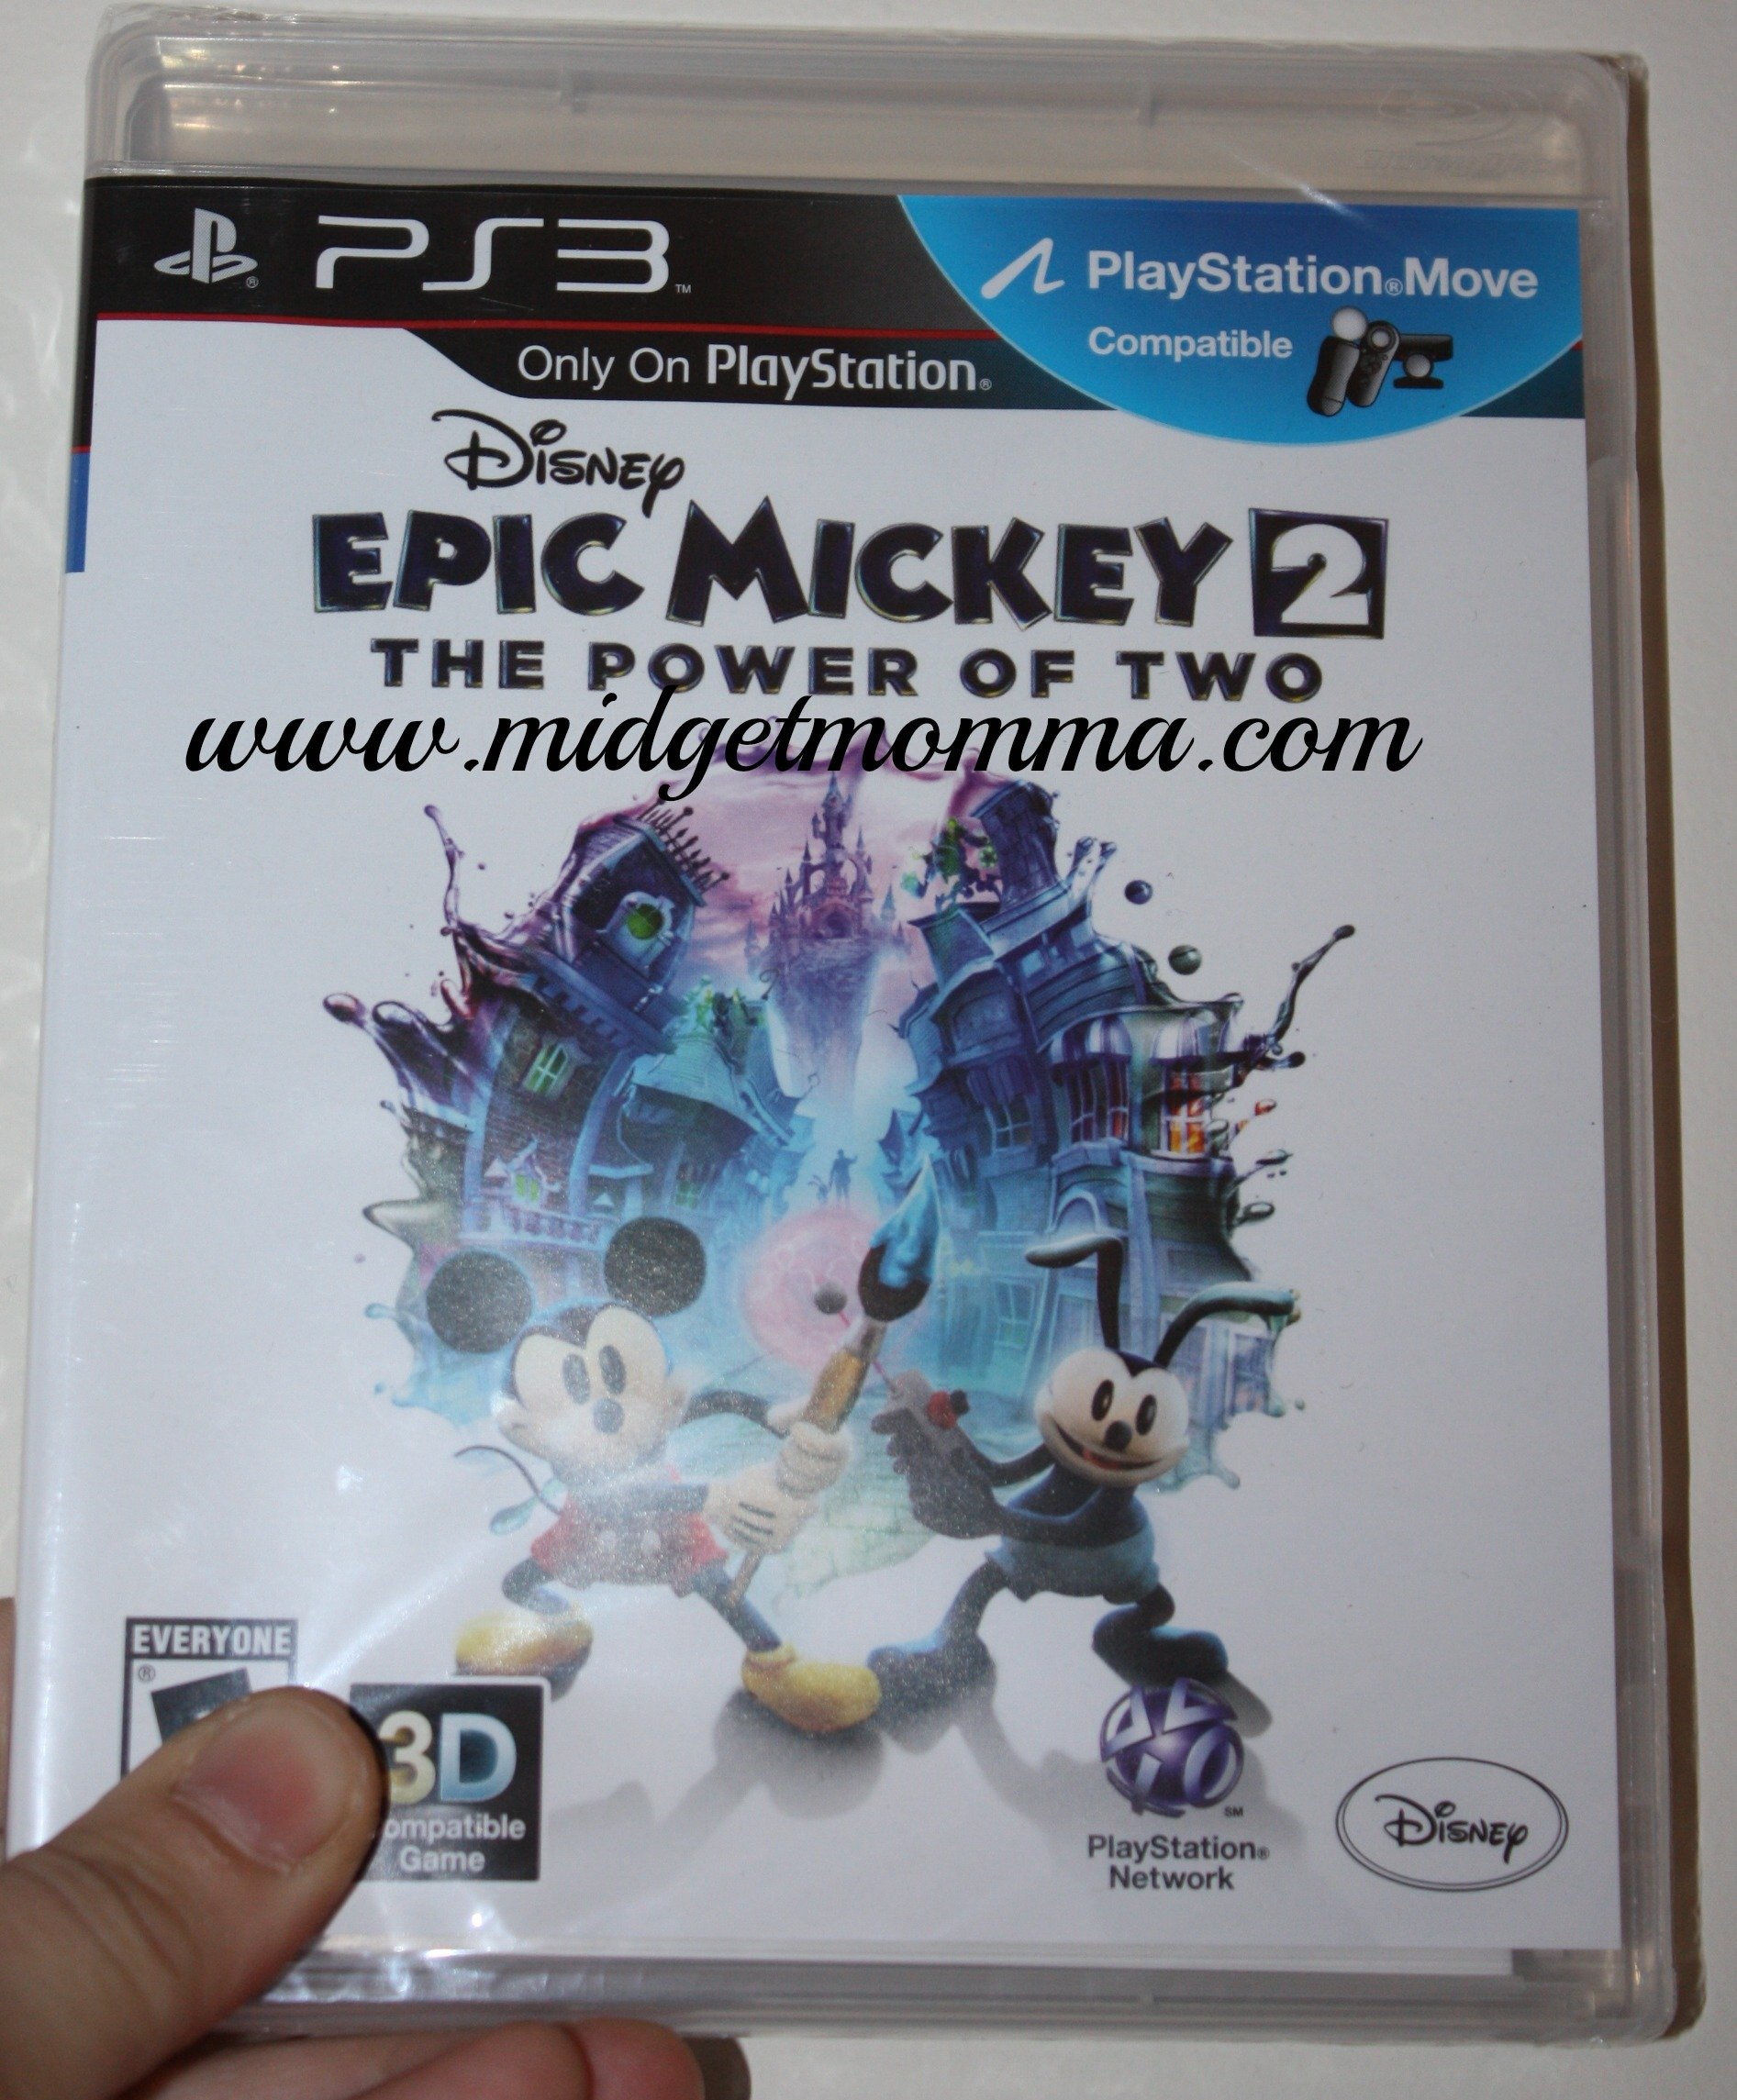 epic mickey 2 ps3 review